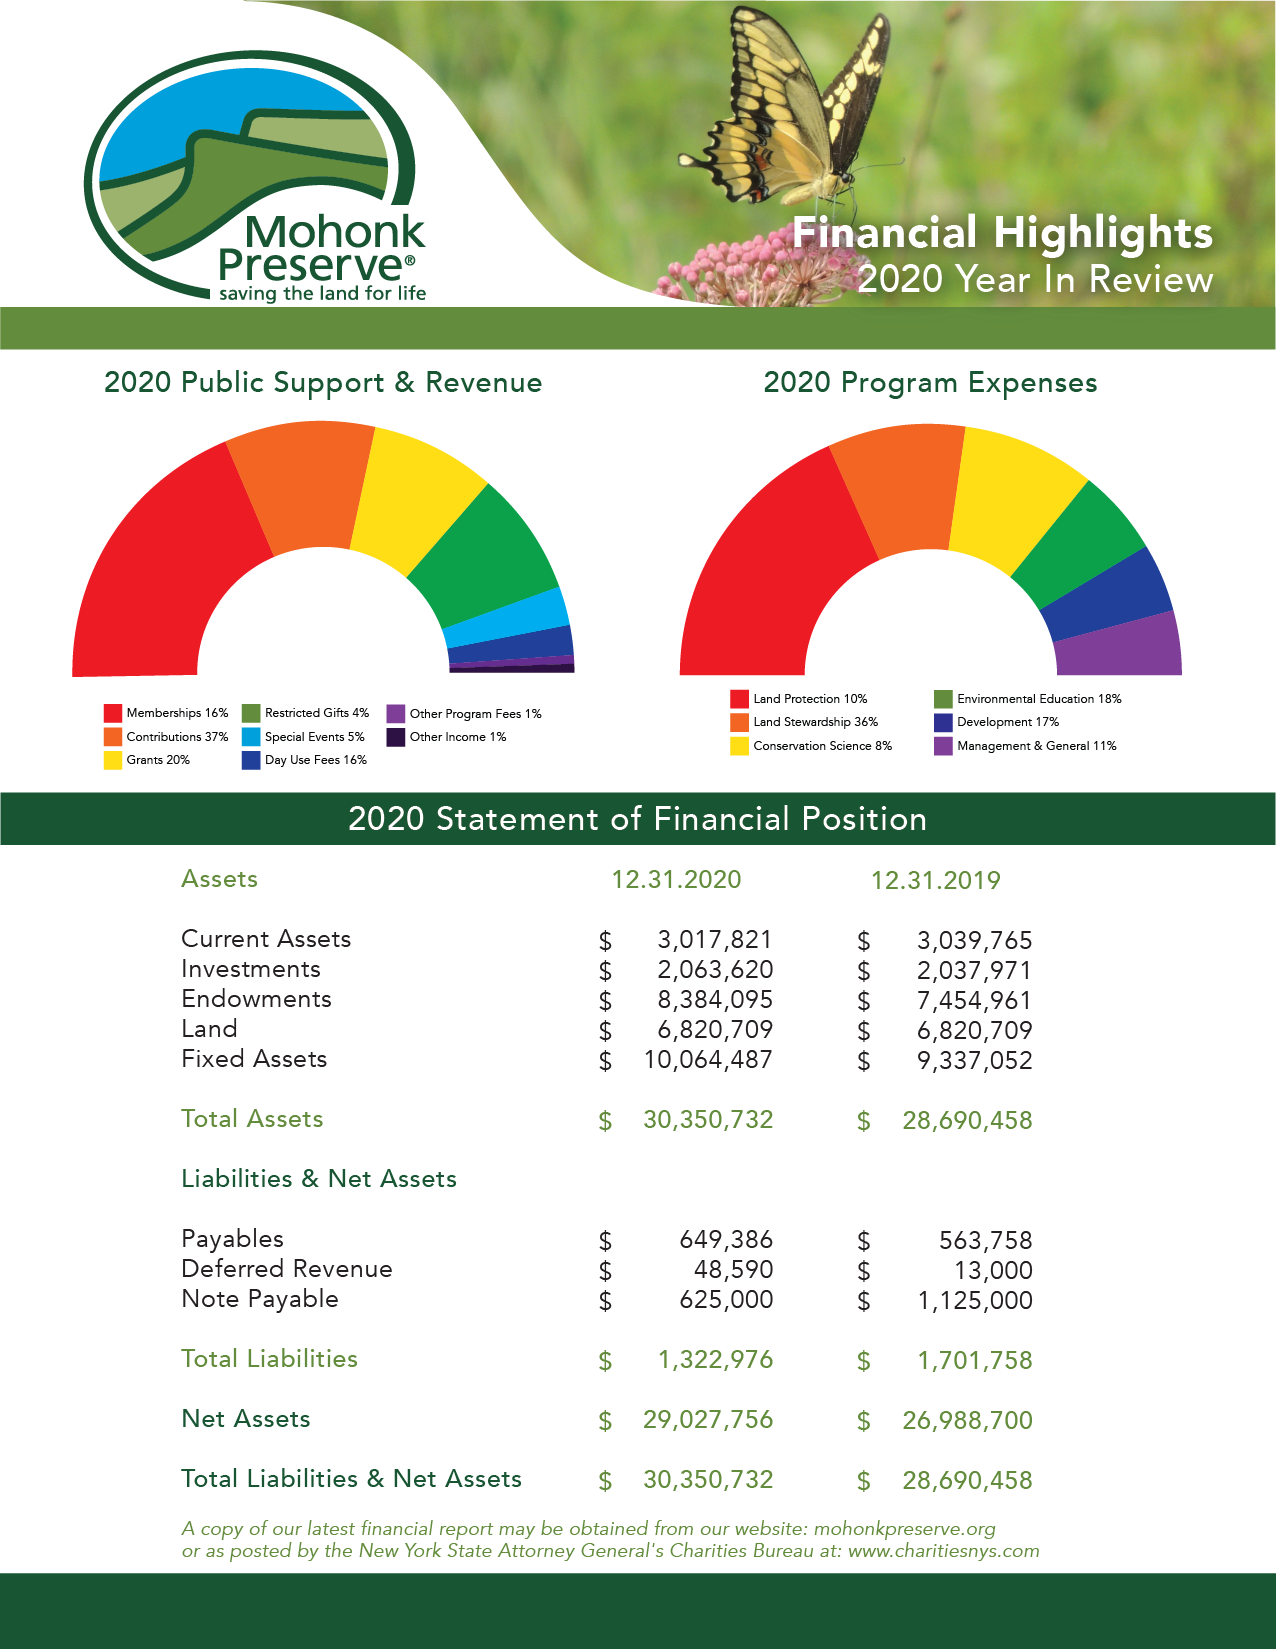 Financial Highlights 2020 Year In Review: 2020 Public Support & Revenue; 2020 Program Expenses; 2020 Statement of Financial Position